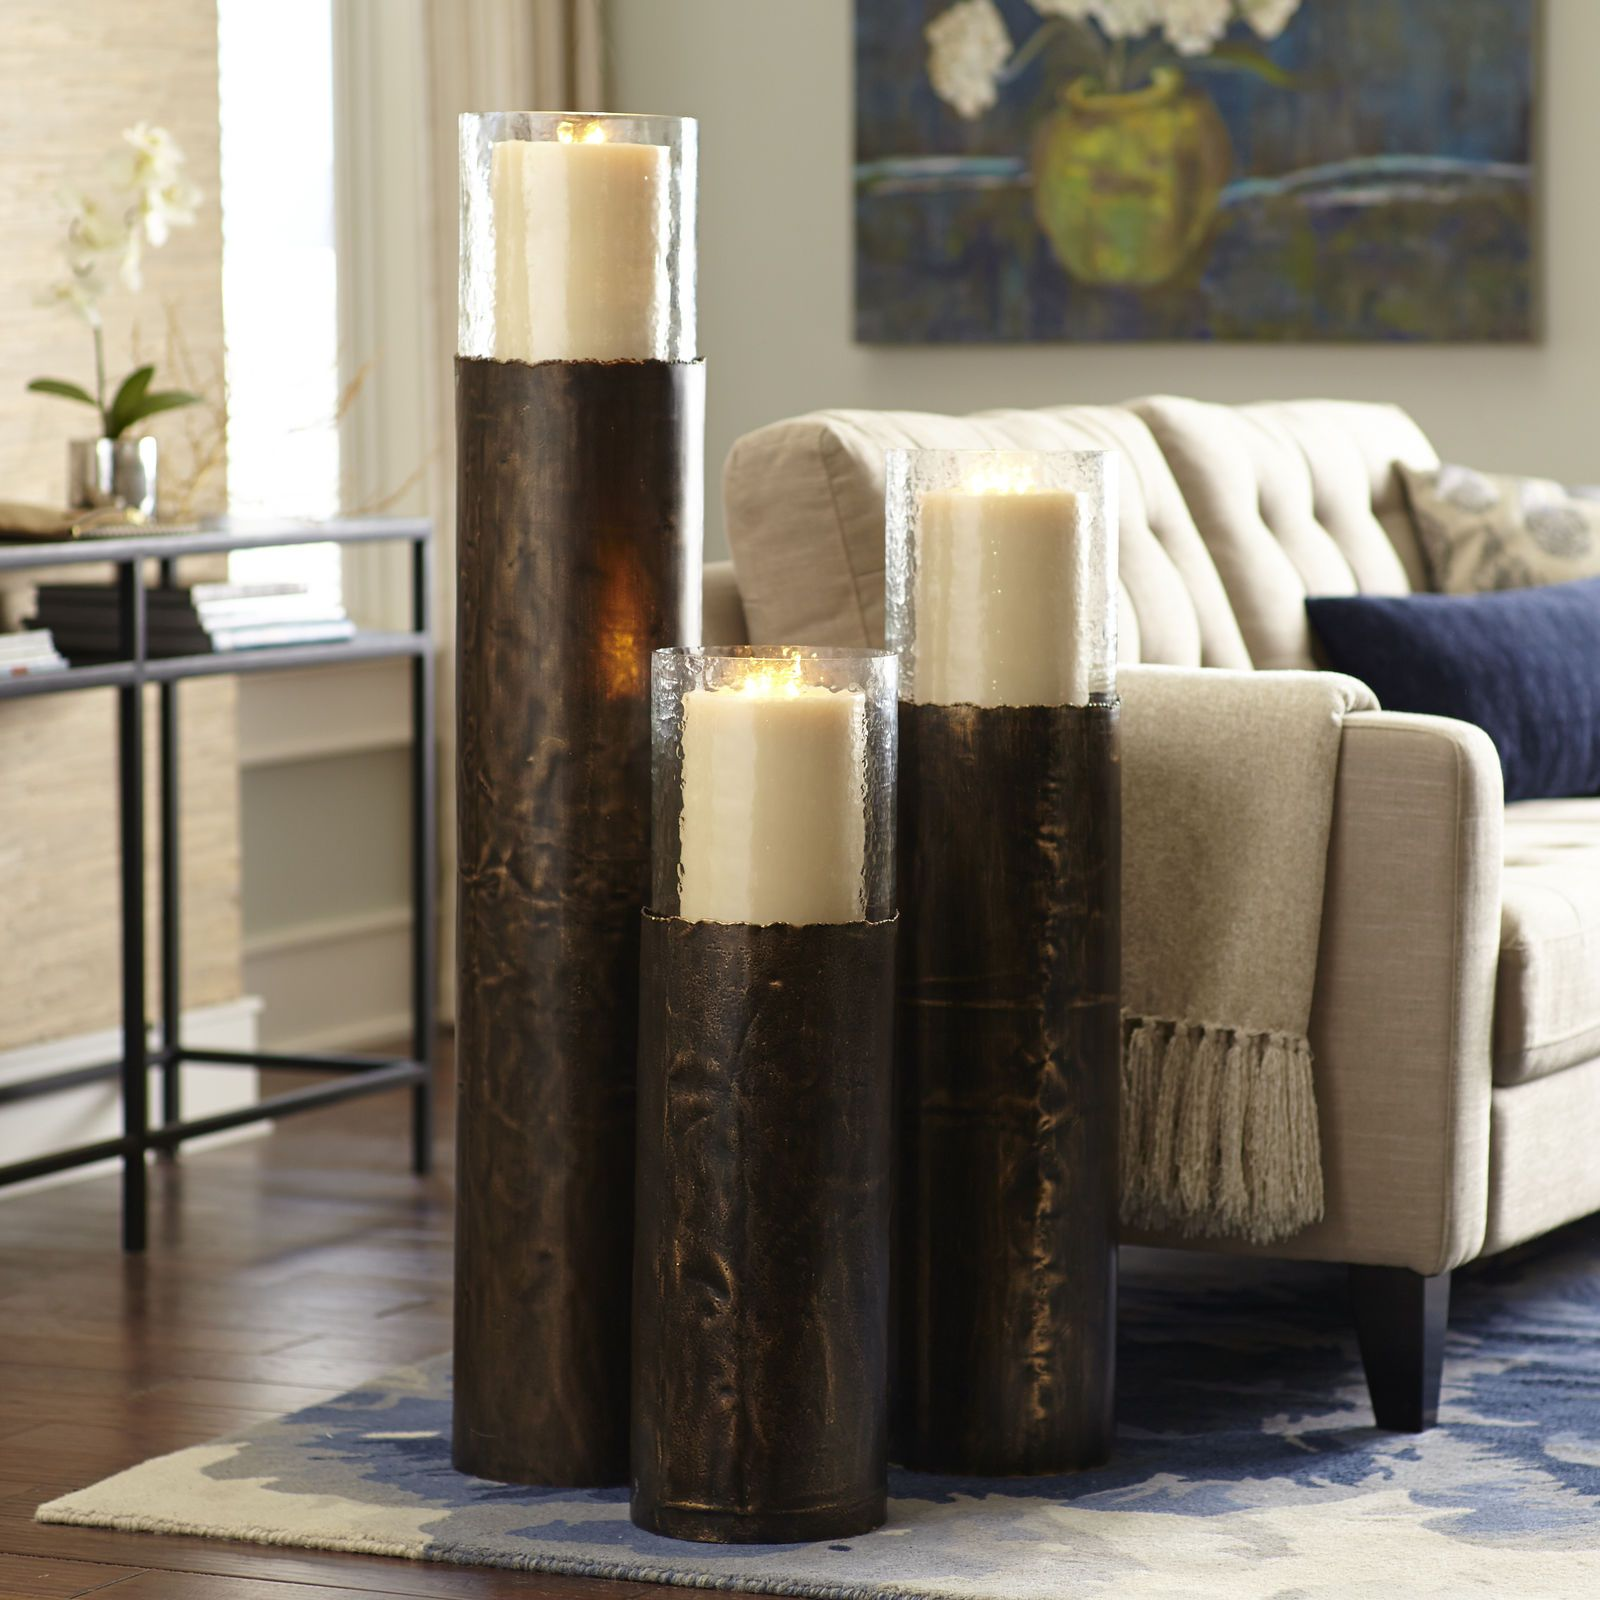 copper leaf floor pillar holders  Candle holders in 2019